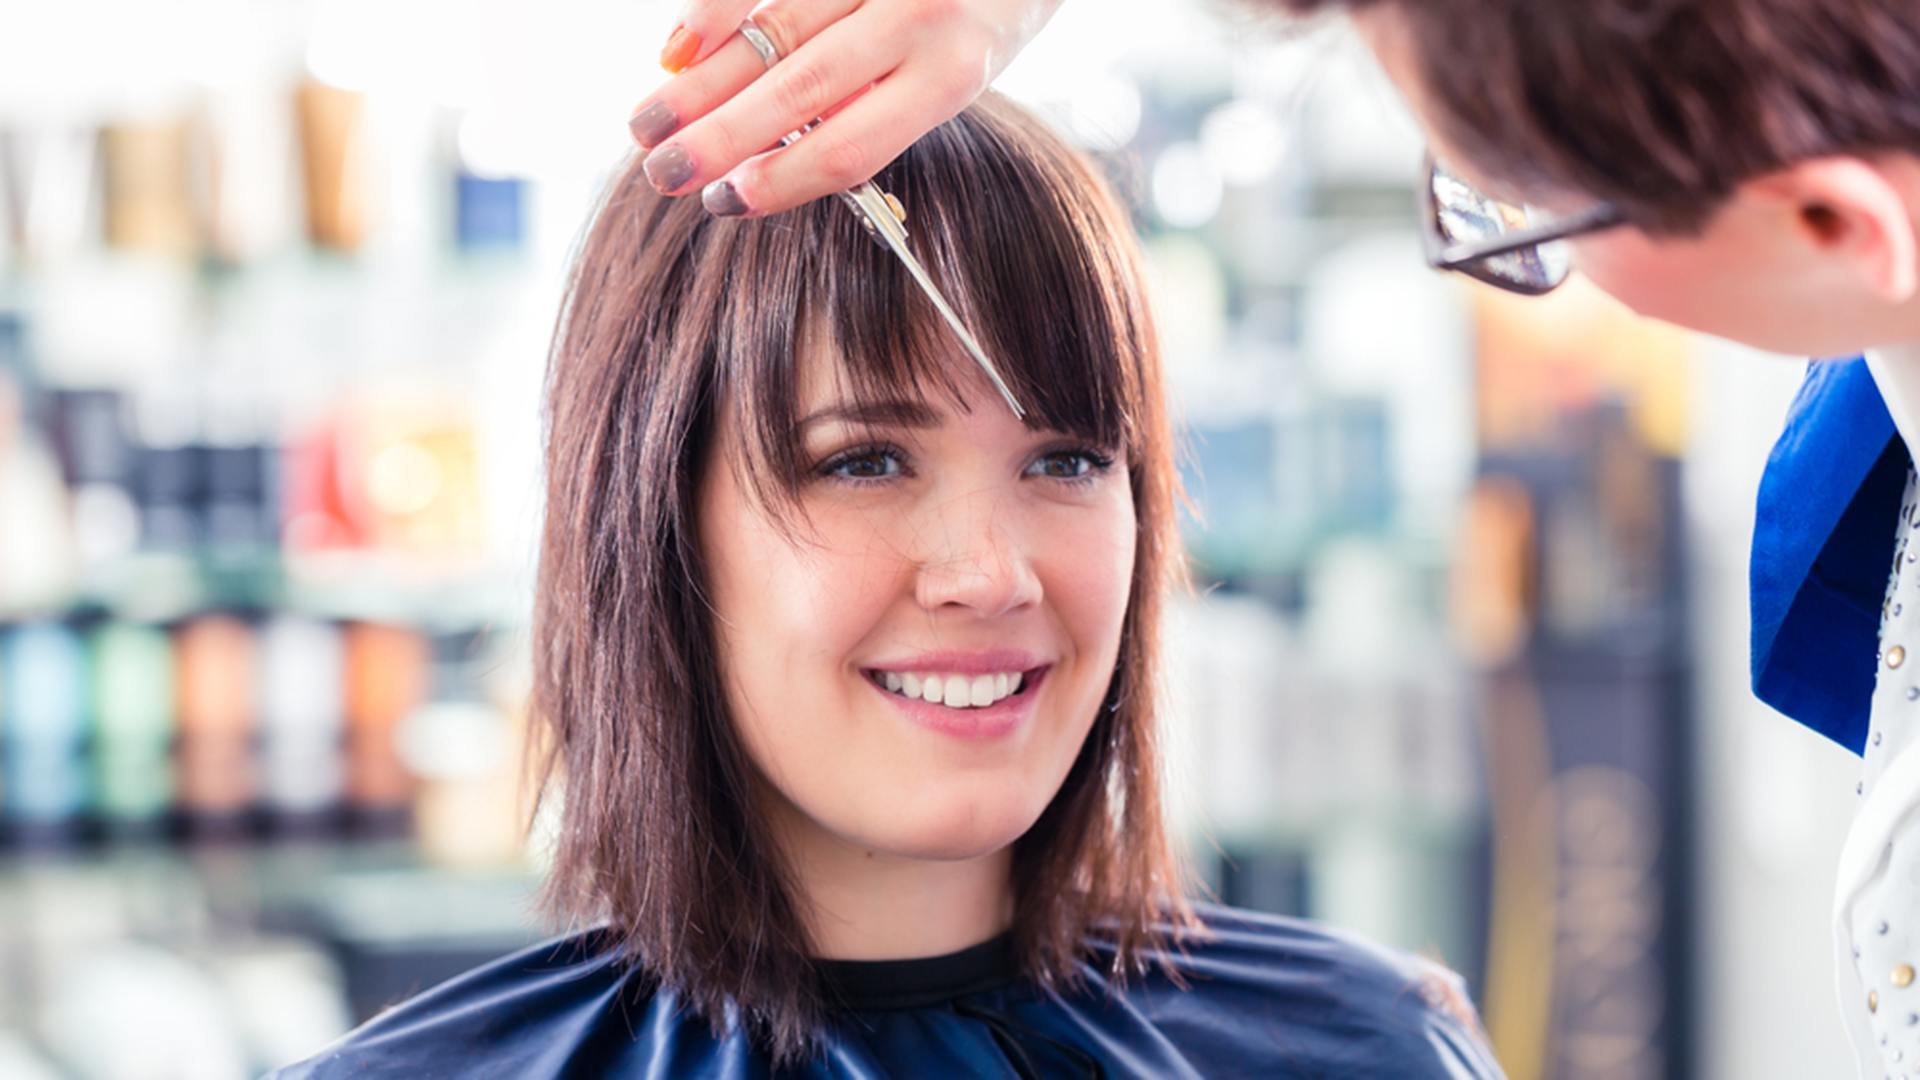 Hair salon etiquette: What if I hate my haircut?